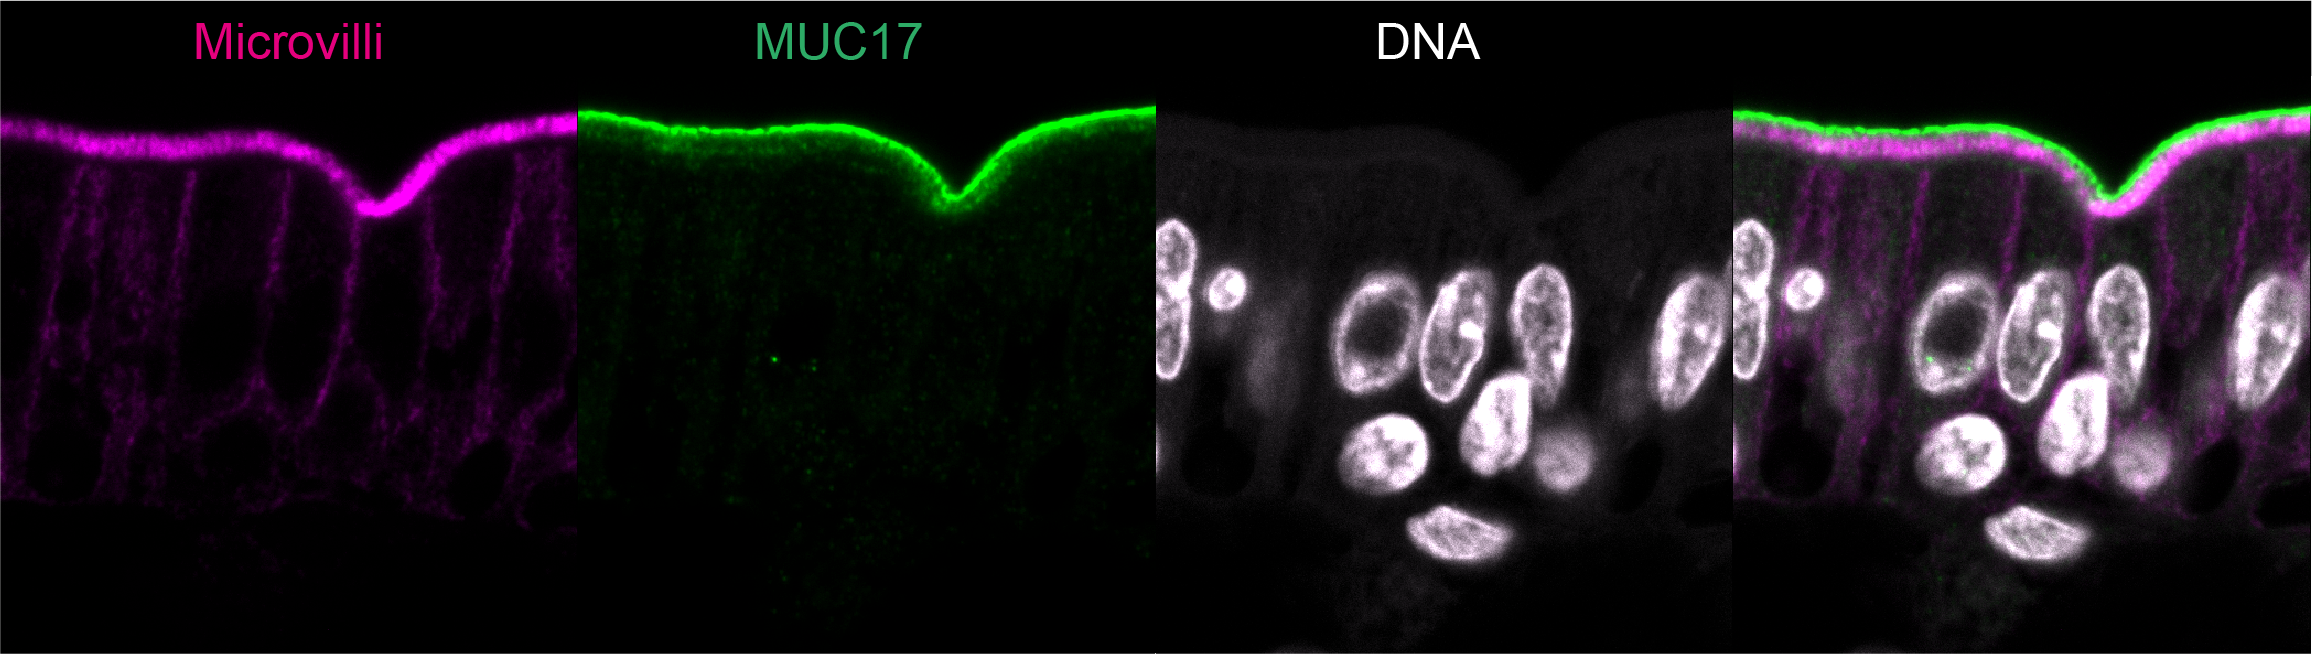 Membrane mucin MUC17 (green) is anchored to the outer tip of apical microvilli (magenta) on enterocytes in the human intestines.